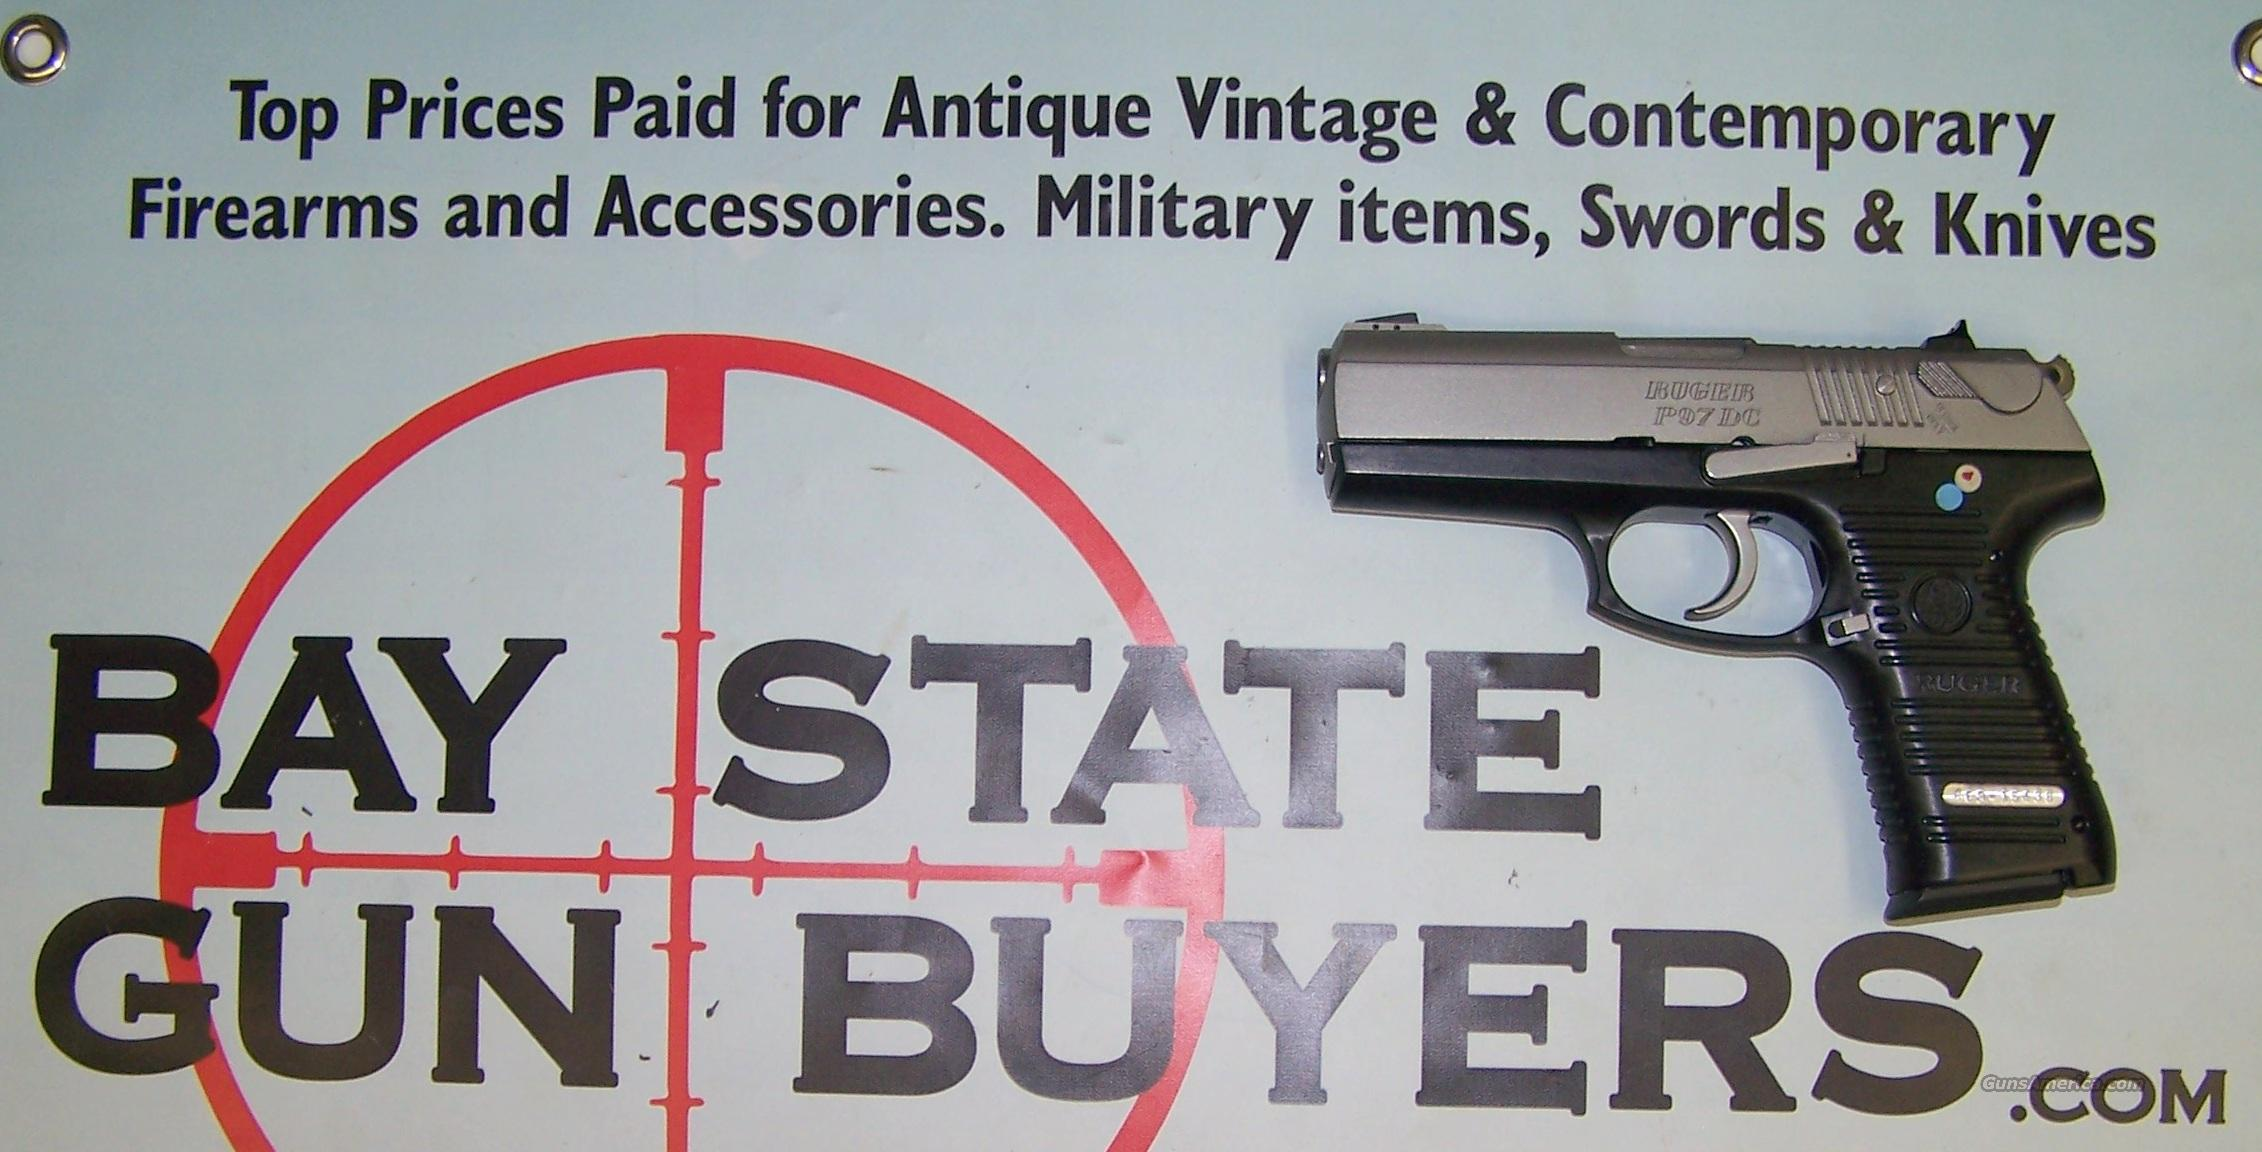 Ruger P97DC .45 acp Pistol LIKE NEW IN BOX P 97 DC  Guns > Pistols > Ruger Semi-Auto Pistols > P-Series